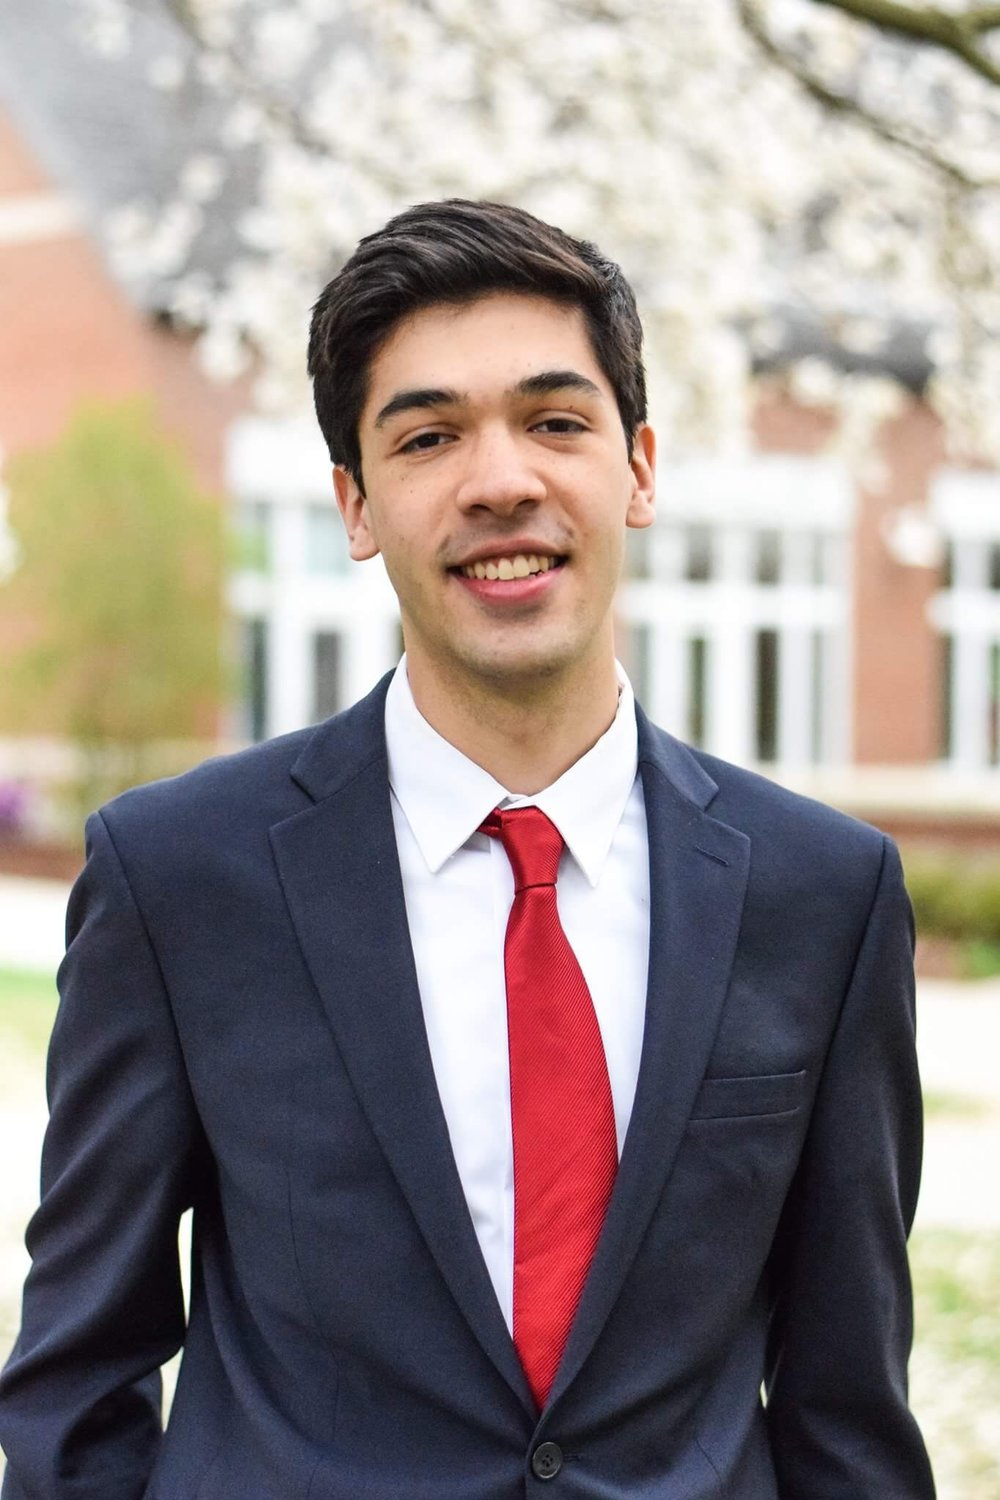 Caleb Lacson Parish, NY Gordon College, Business Administration Major I am interested in pursuing a career in which my personal passions intersect with my professional expertise. As a Business major, I found that working at Seaside Sustainability provides me with a platform in which I can gain experience with multiple components of a business. In addition to my college education, I have a strong passion for people, learning, and the environment. As a small non-profit focused on environmental education, Seaside Sustainability offers the unique opportunity to get hands-on experience relevant to my interests.